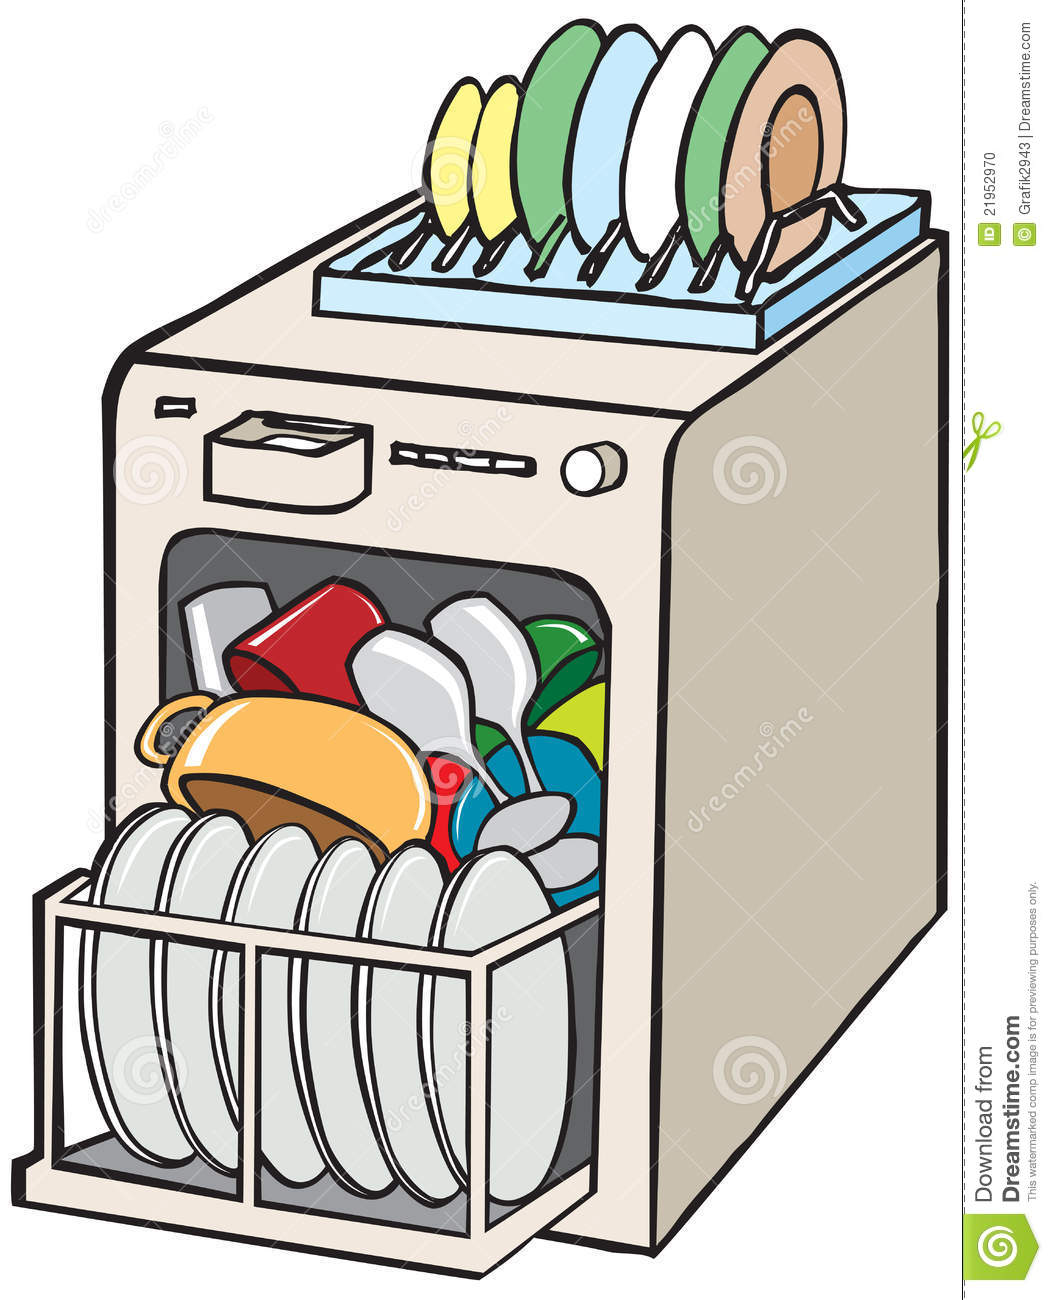 Dishwasher 20clipart   Clipart Panda   Free Clipart Images